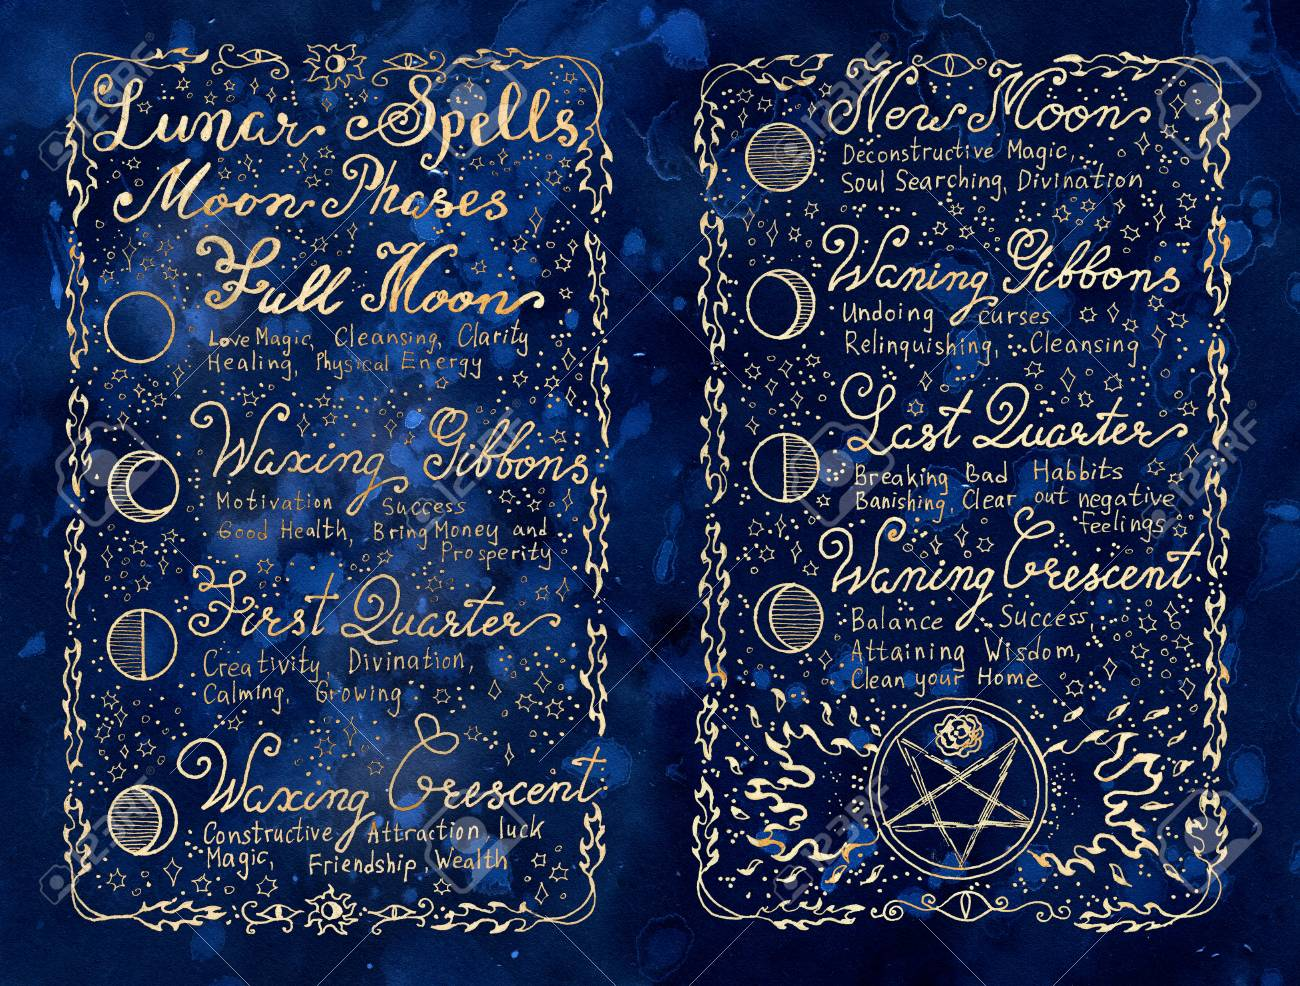 Lunar magic spells on blue textured background  Occult, esoteric,